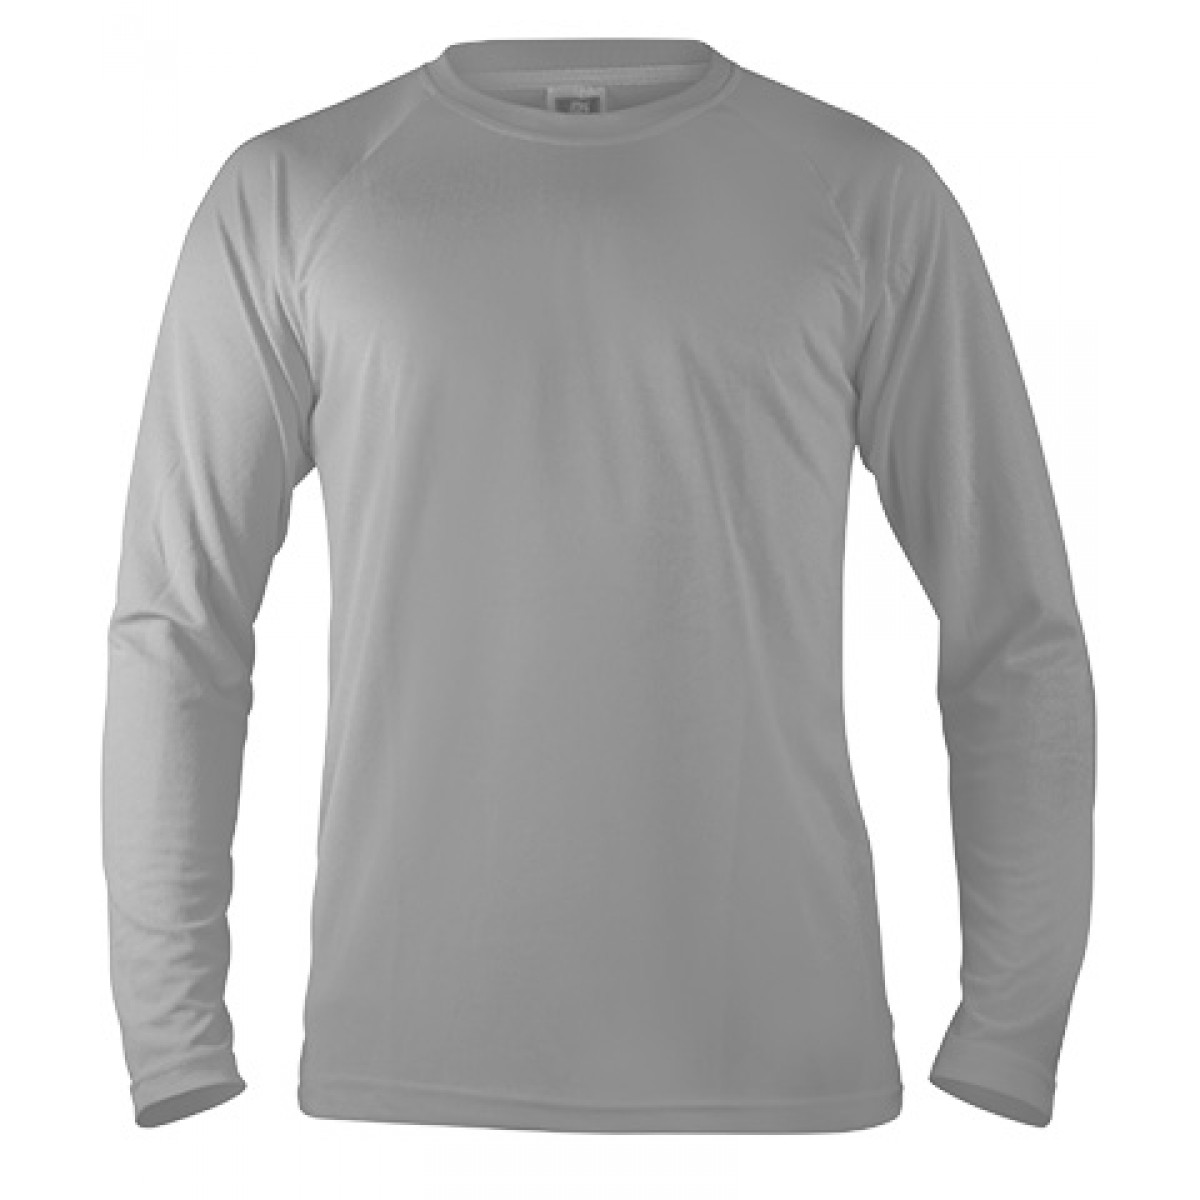 Long Sleeve Performance -Gray -S